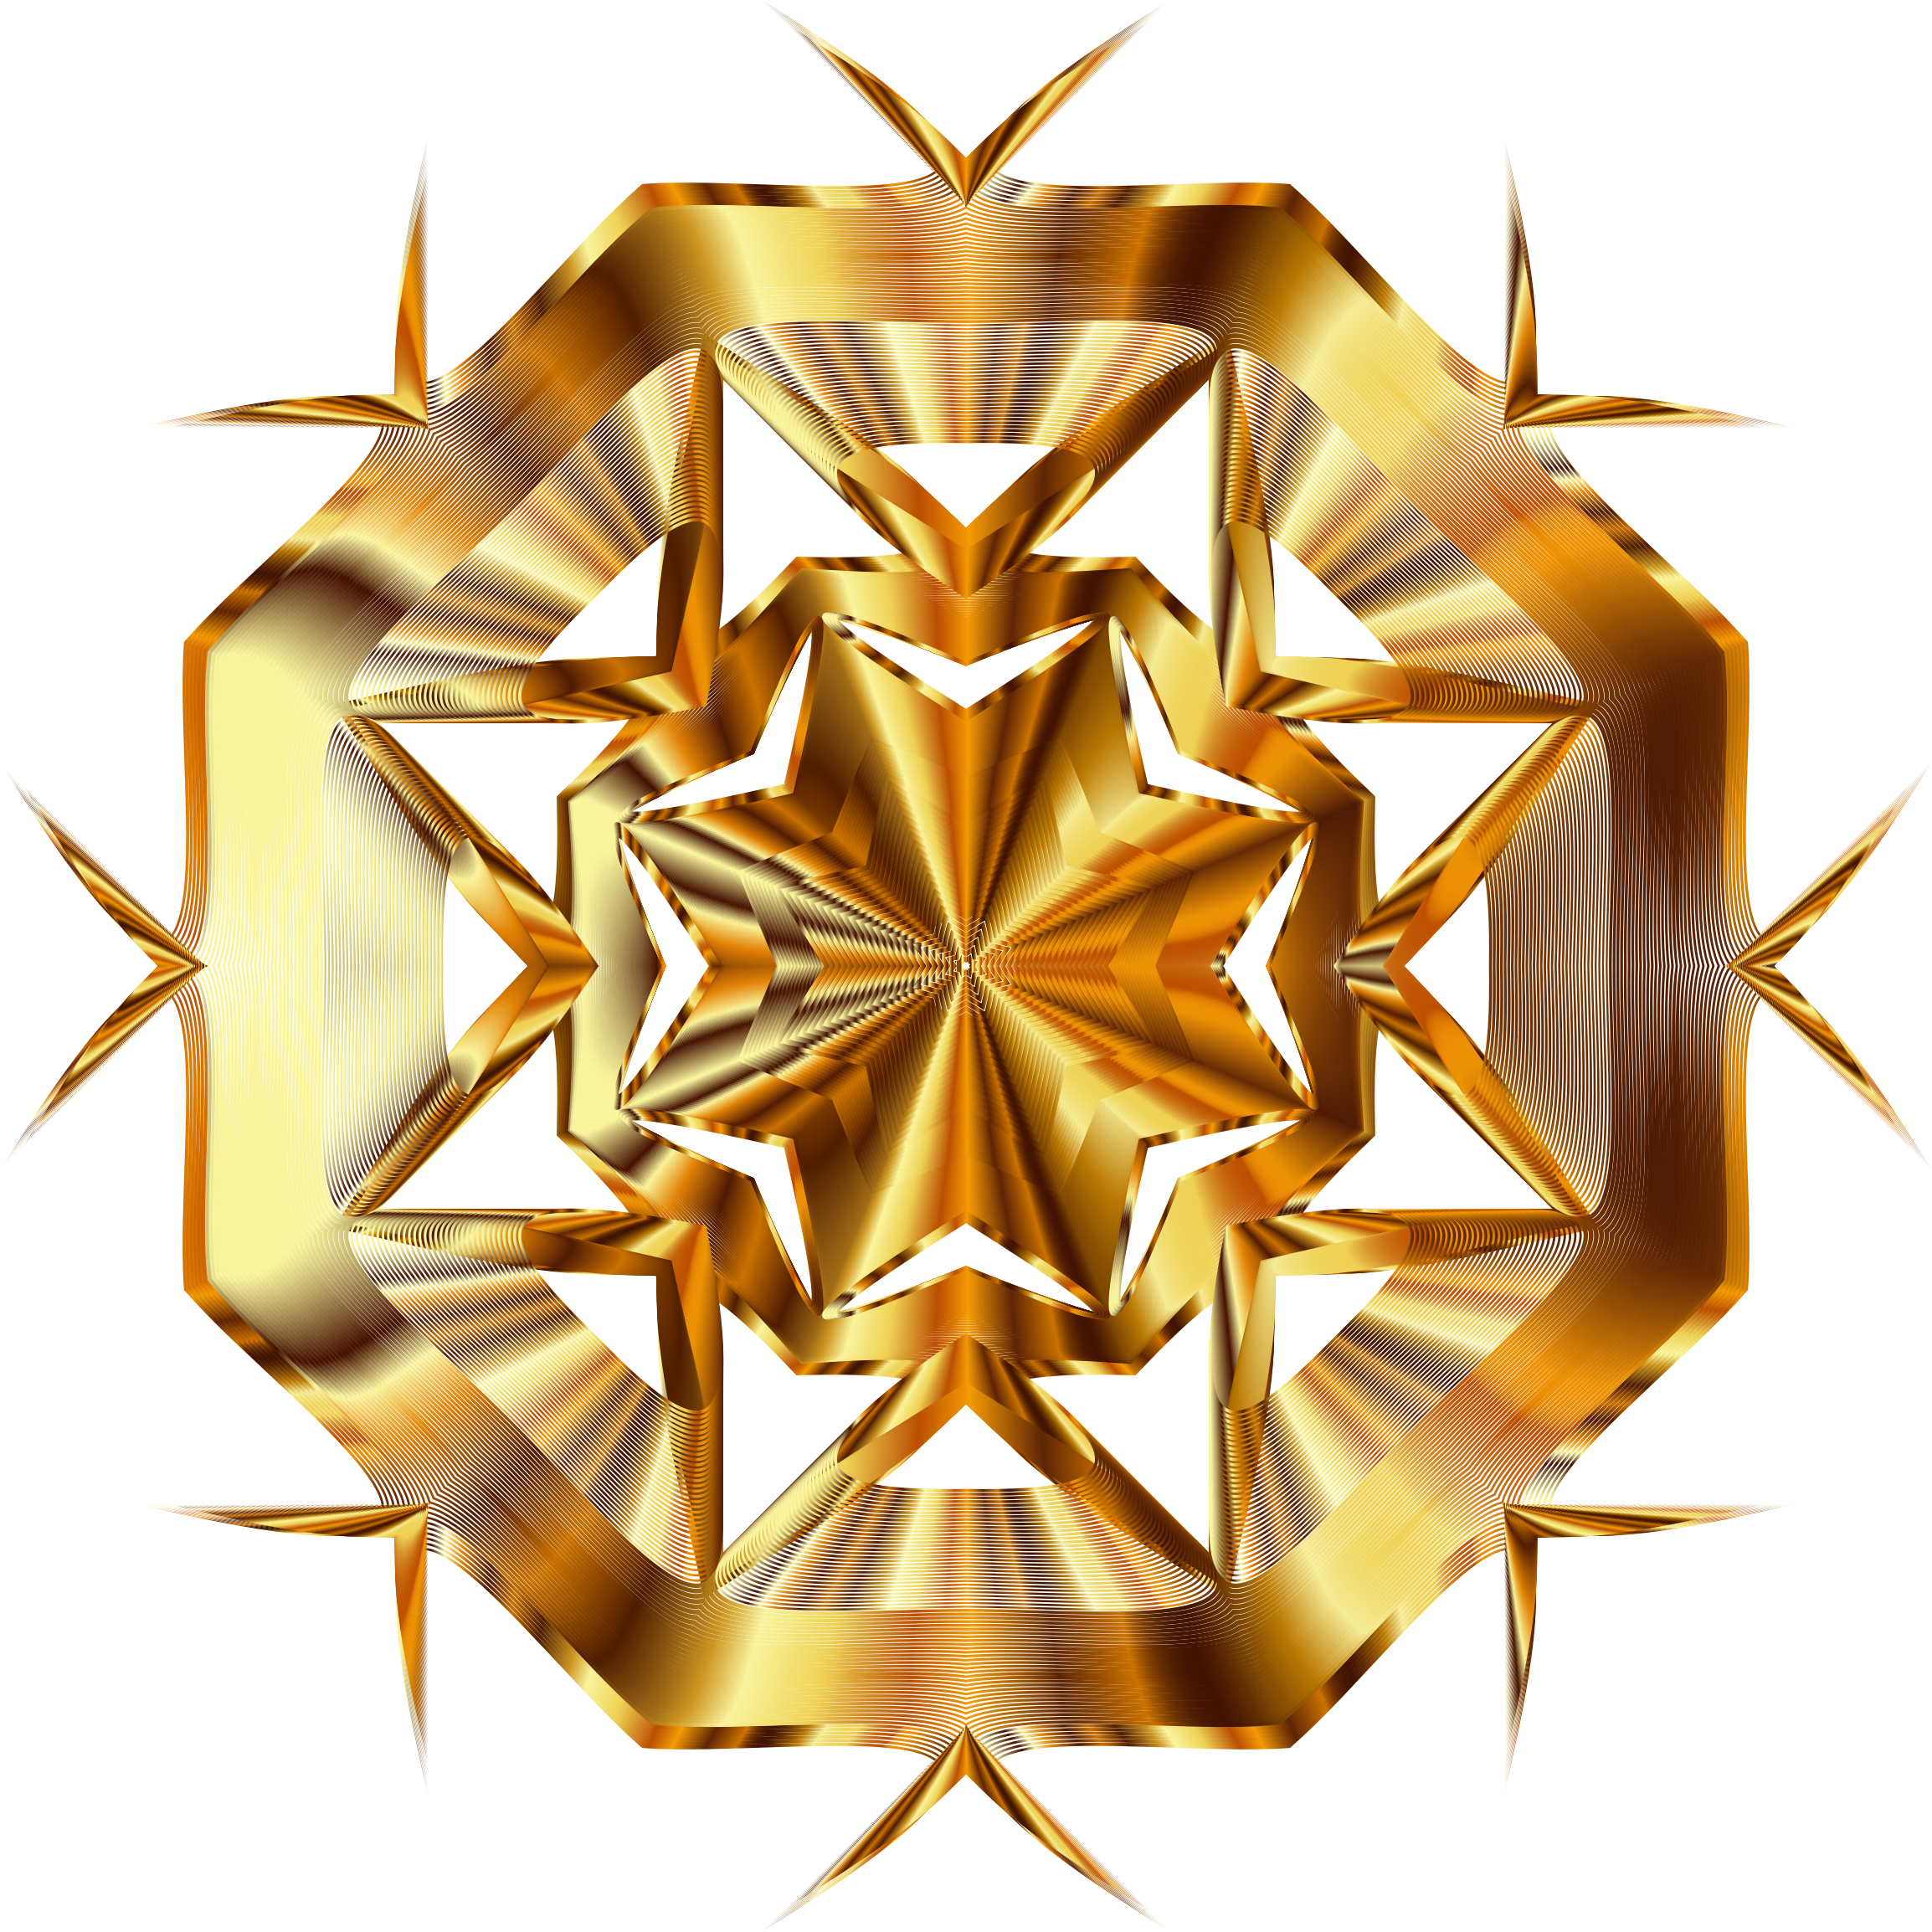 Gold star line clipart clipart stock Clipart - Prismatic Star Line Art 5 No Background clipart stock